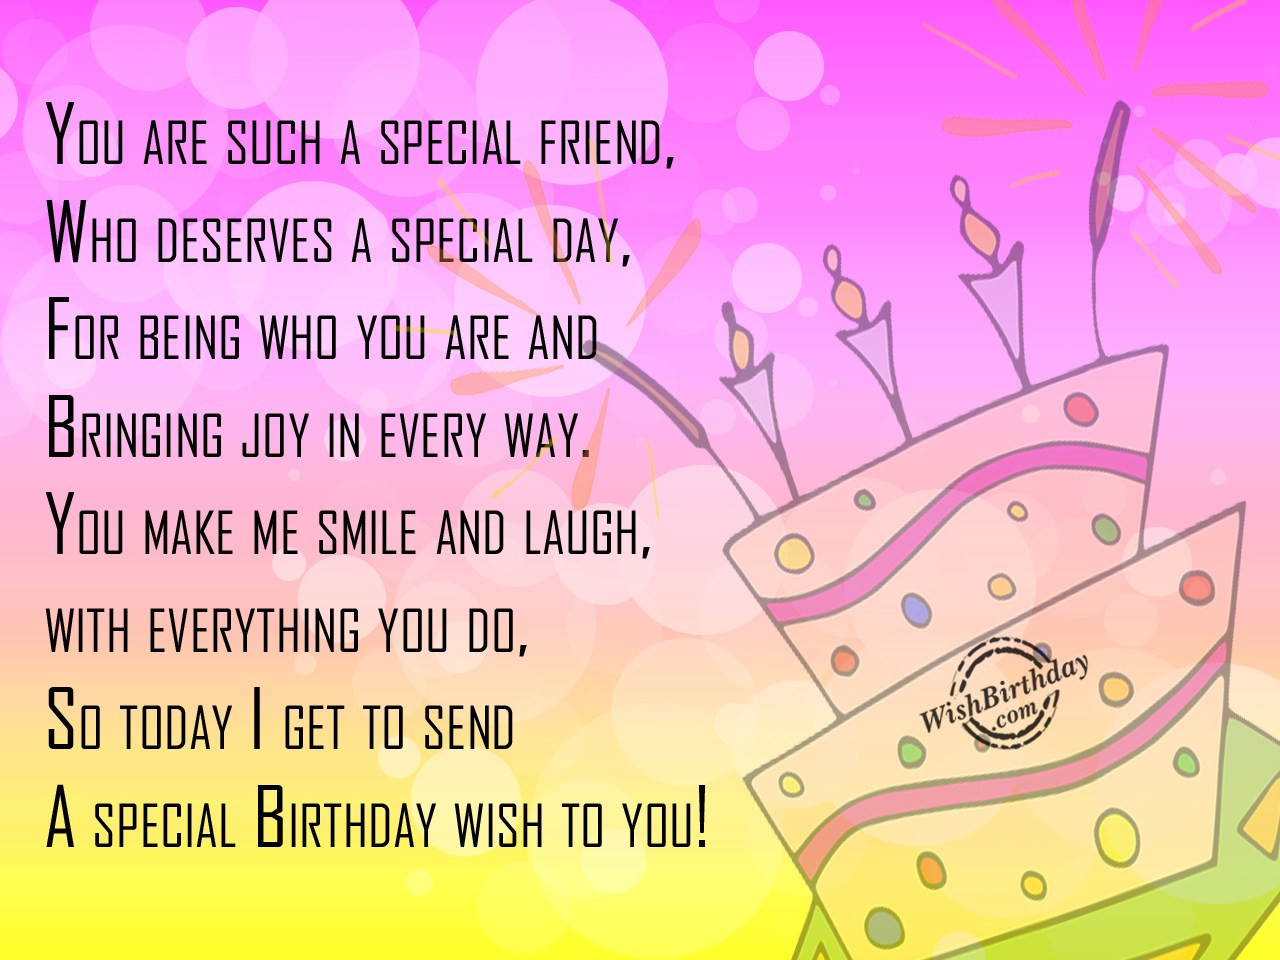 Best ideas about Unique Birthday Wishes For Friends . Save or Pin birthdaywishes291 Now.